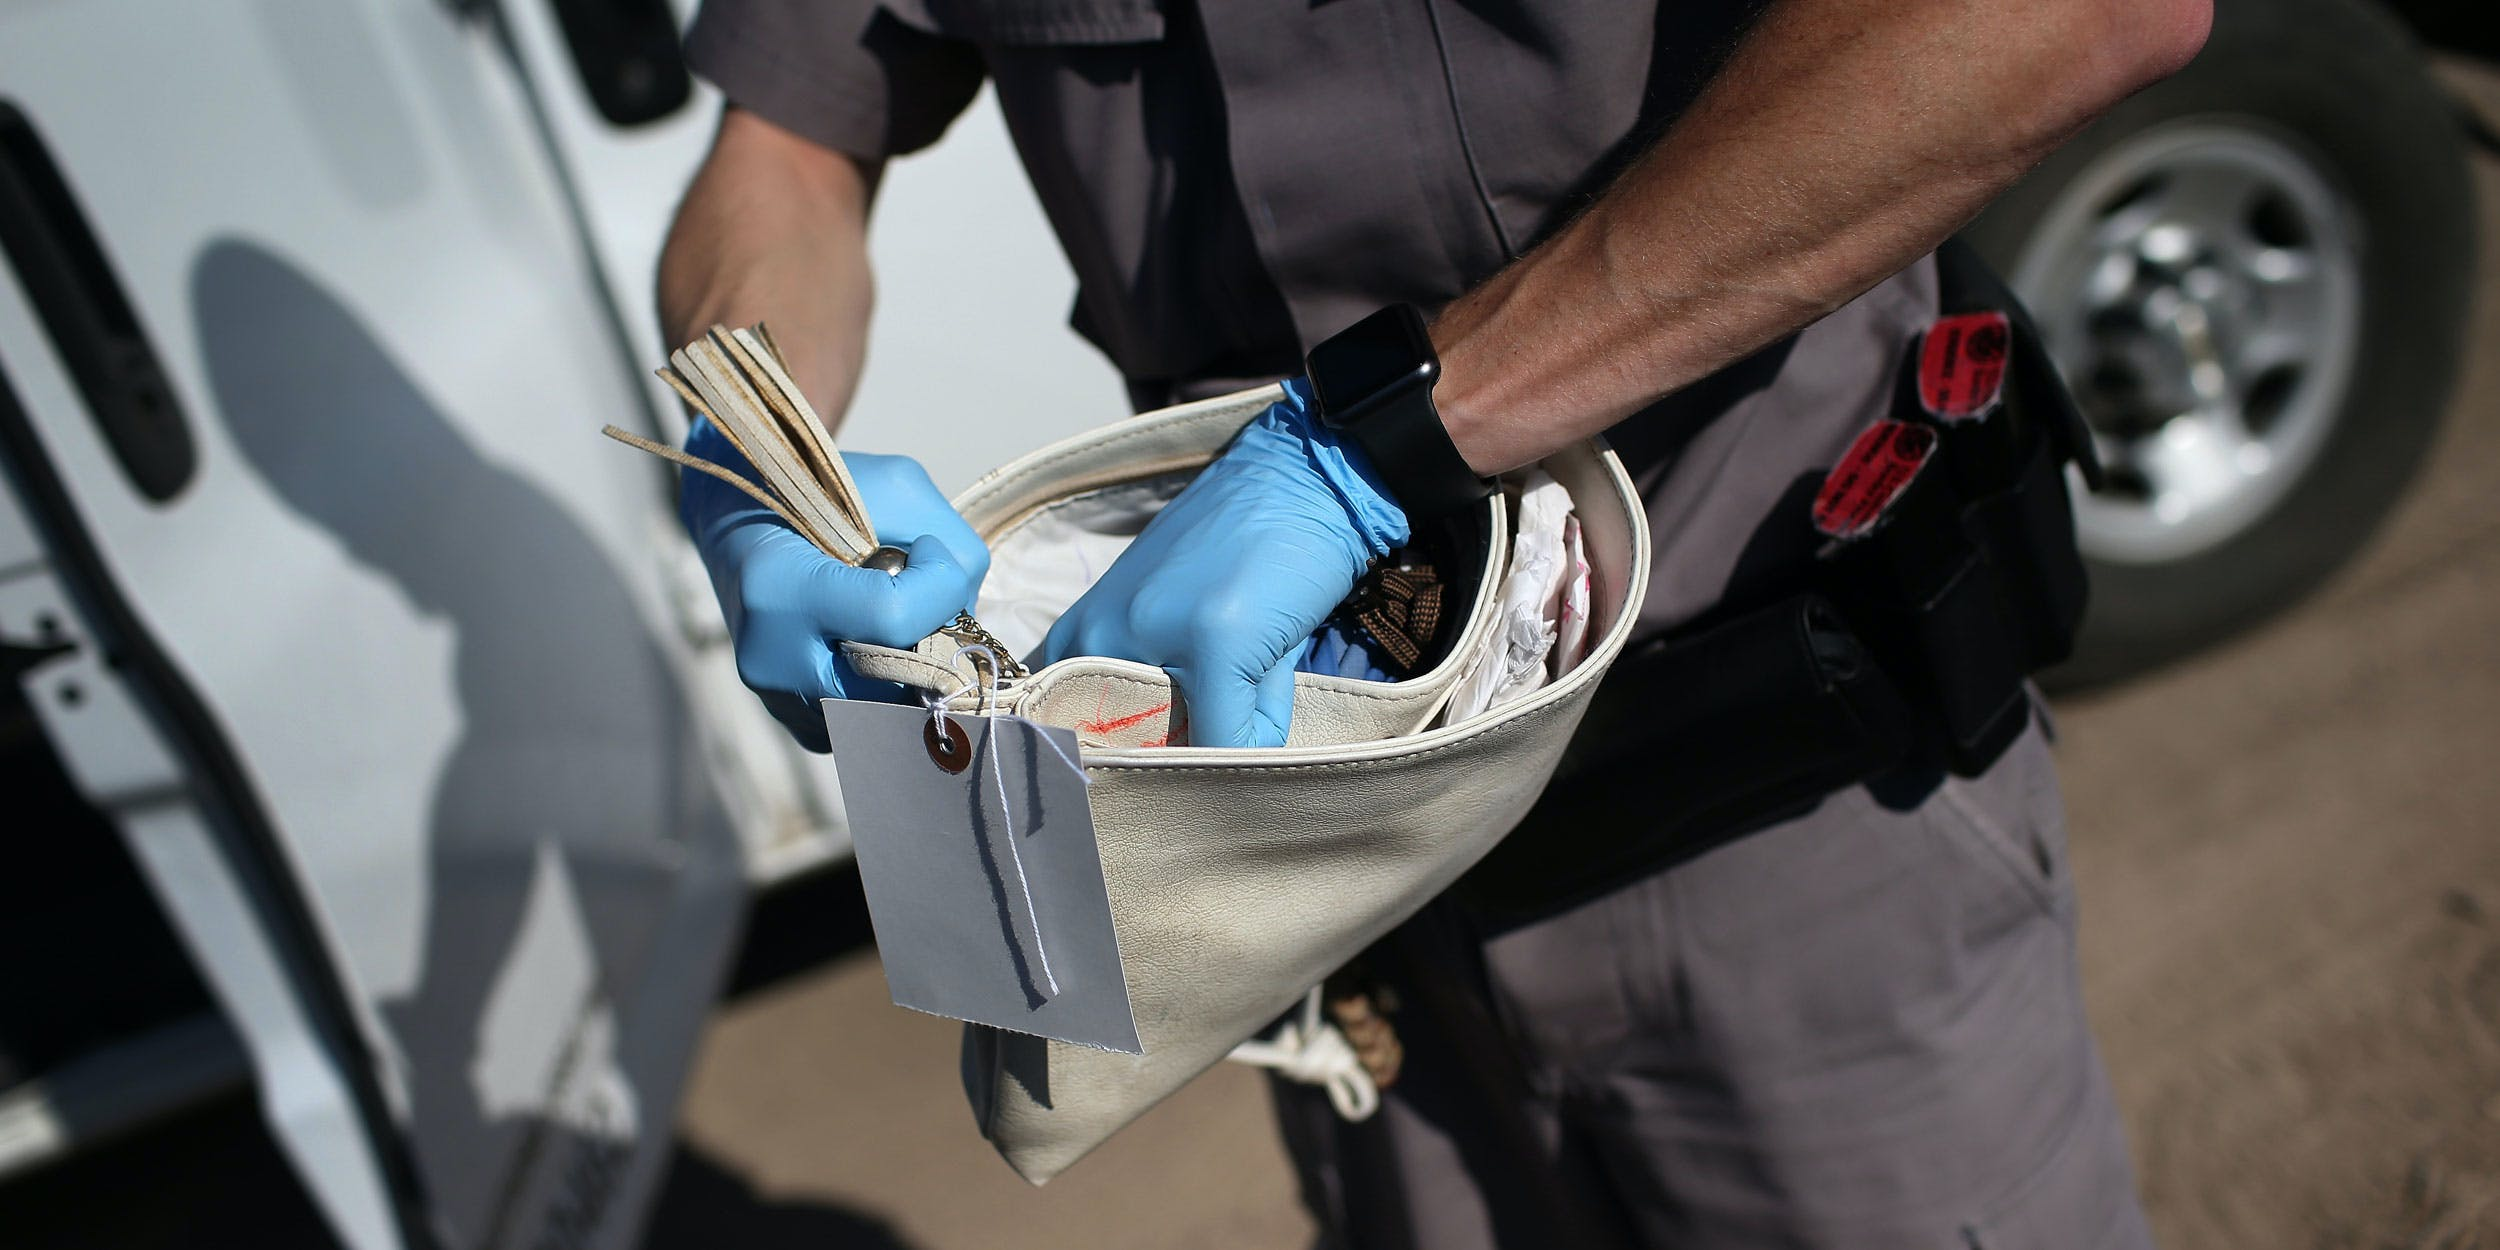 RIO GRANDE CITY, TX - DECEMBER 07: A Border security agent searches the purse of an undocumented immigrant from El Salvador after she illegally crossed the U.S.-Mexico border and was caught by the U.S. Border Patrol on December 7, 2015 near Rio Grande City, Texas. Border Patrol agents continue to capture hundreds of thousands of undocumented immigrants each year trying to sneak into the United States, even as migrant families and unaccompanied minors from Central America cross and turn themselves in to seek asylum. (Photo by John Moore/Getty Images)